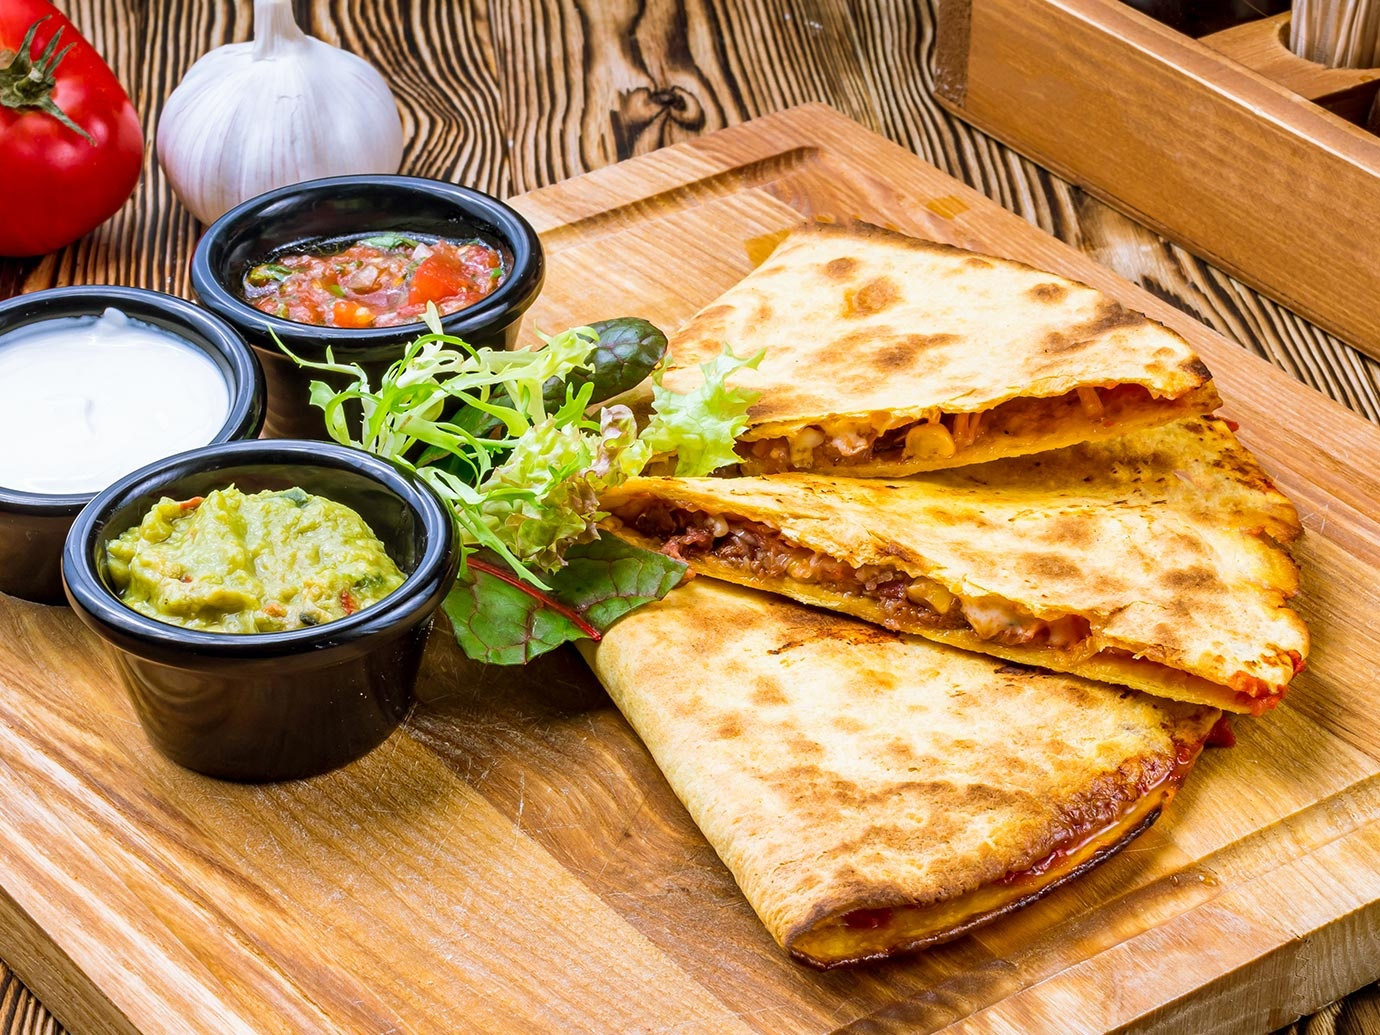 TURKEY OR CHICKEN QUESADILLAS